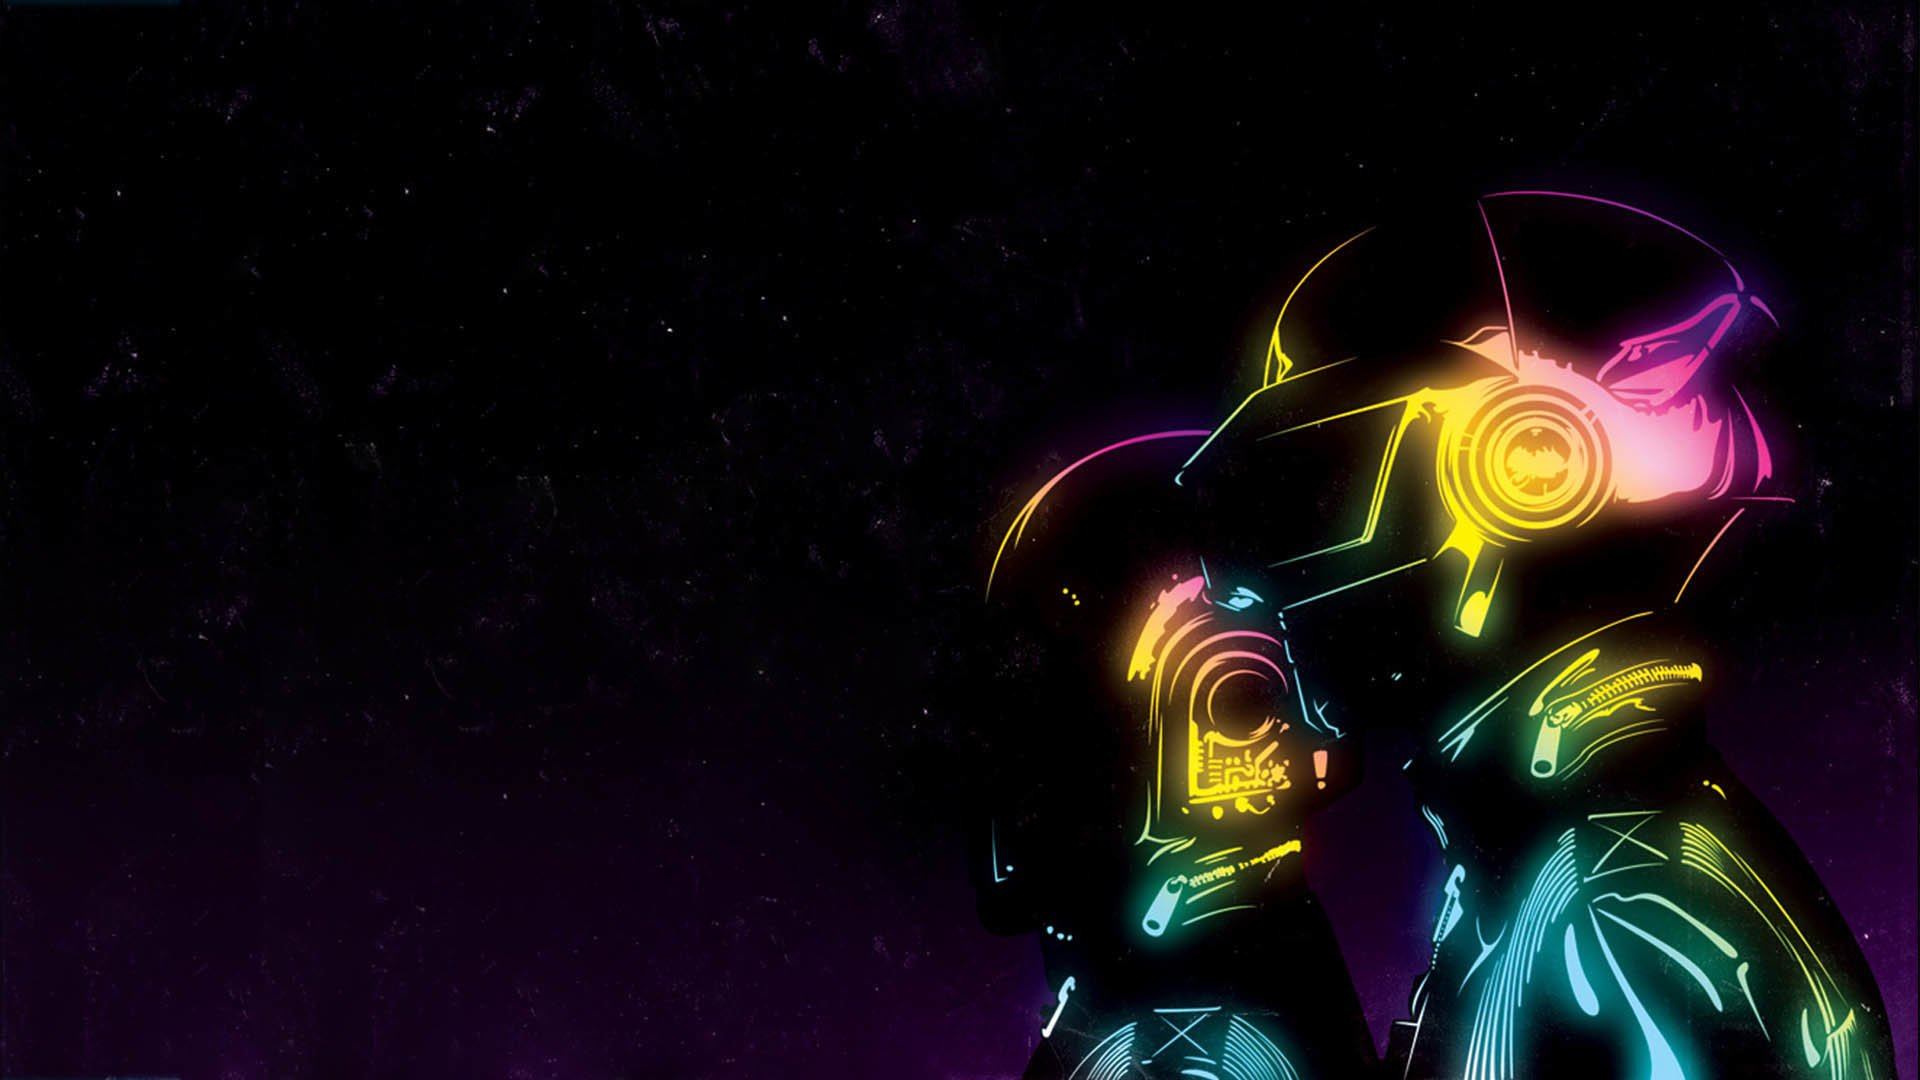 Daft Punk HD Wallpaper | Background Image | 1920x1080 | ID ...